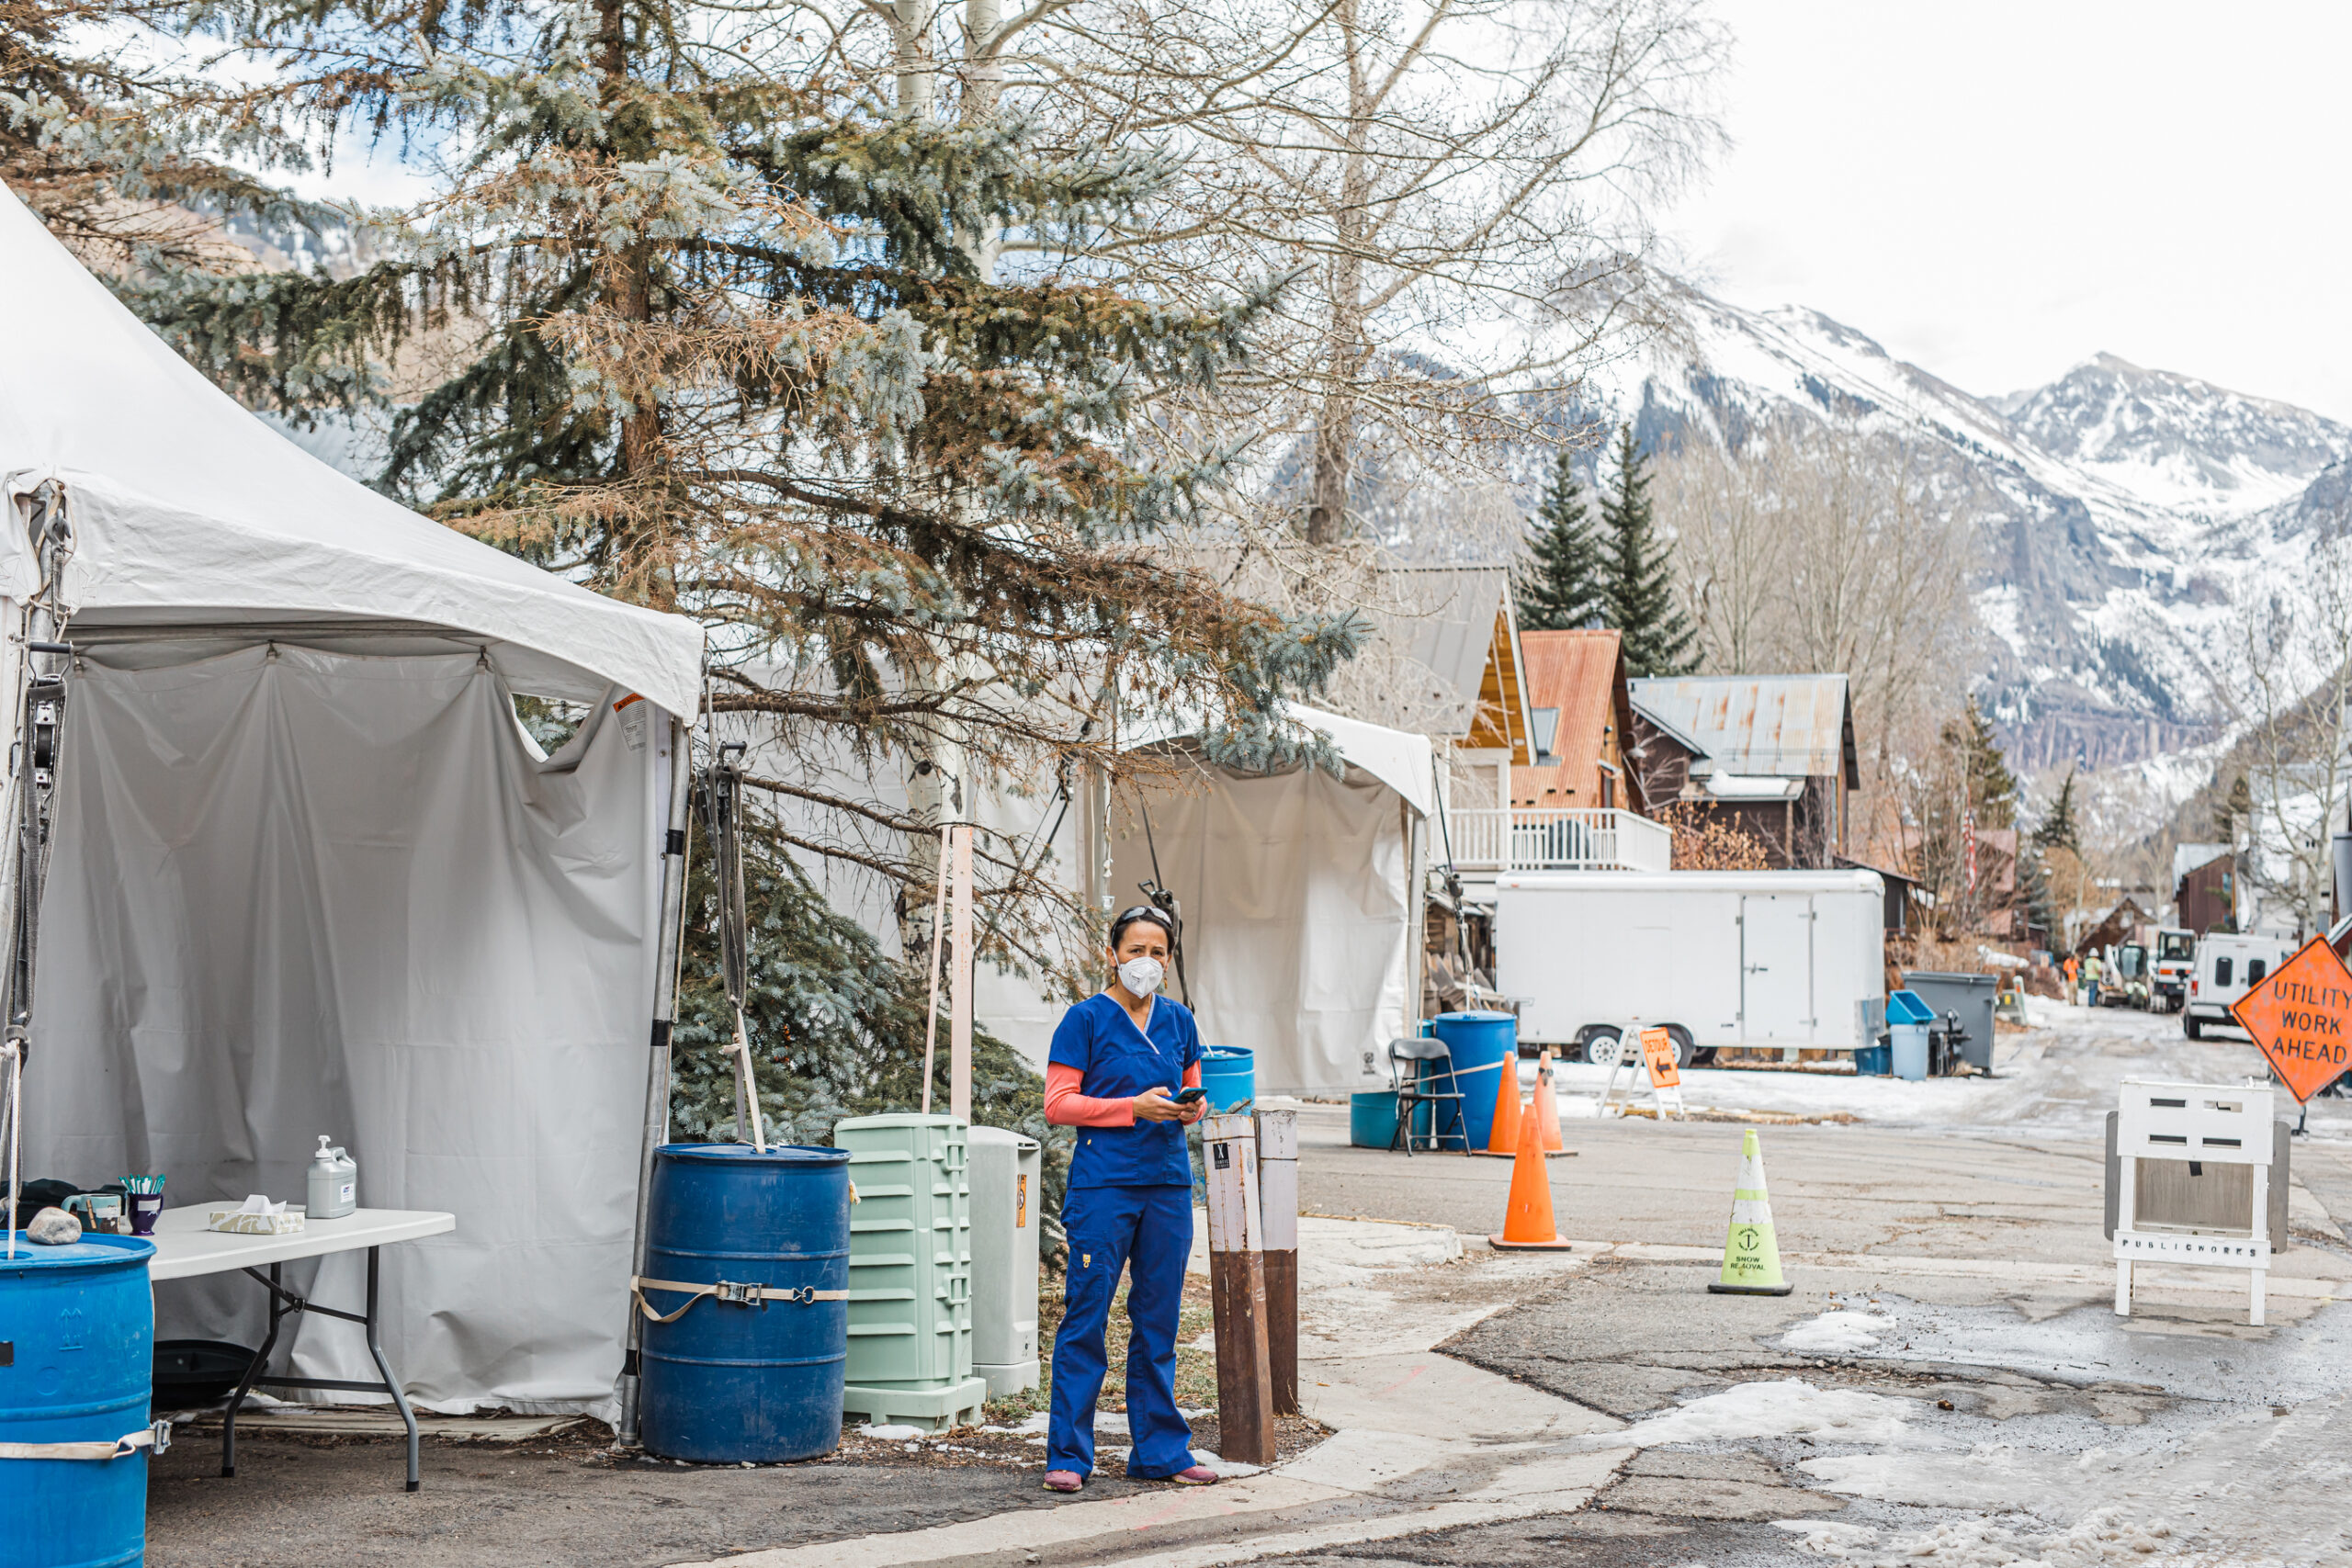 Ximena Rebolledo León, a registered nurse at Telluride Regional Medical Center in southwestern Colorado, emigrated from Mexico more than 20 years ago. During the COVID-19 pandemic, she has performed contact tracing in the small Telluride community, including among many Latino front-line workers.